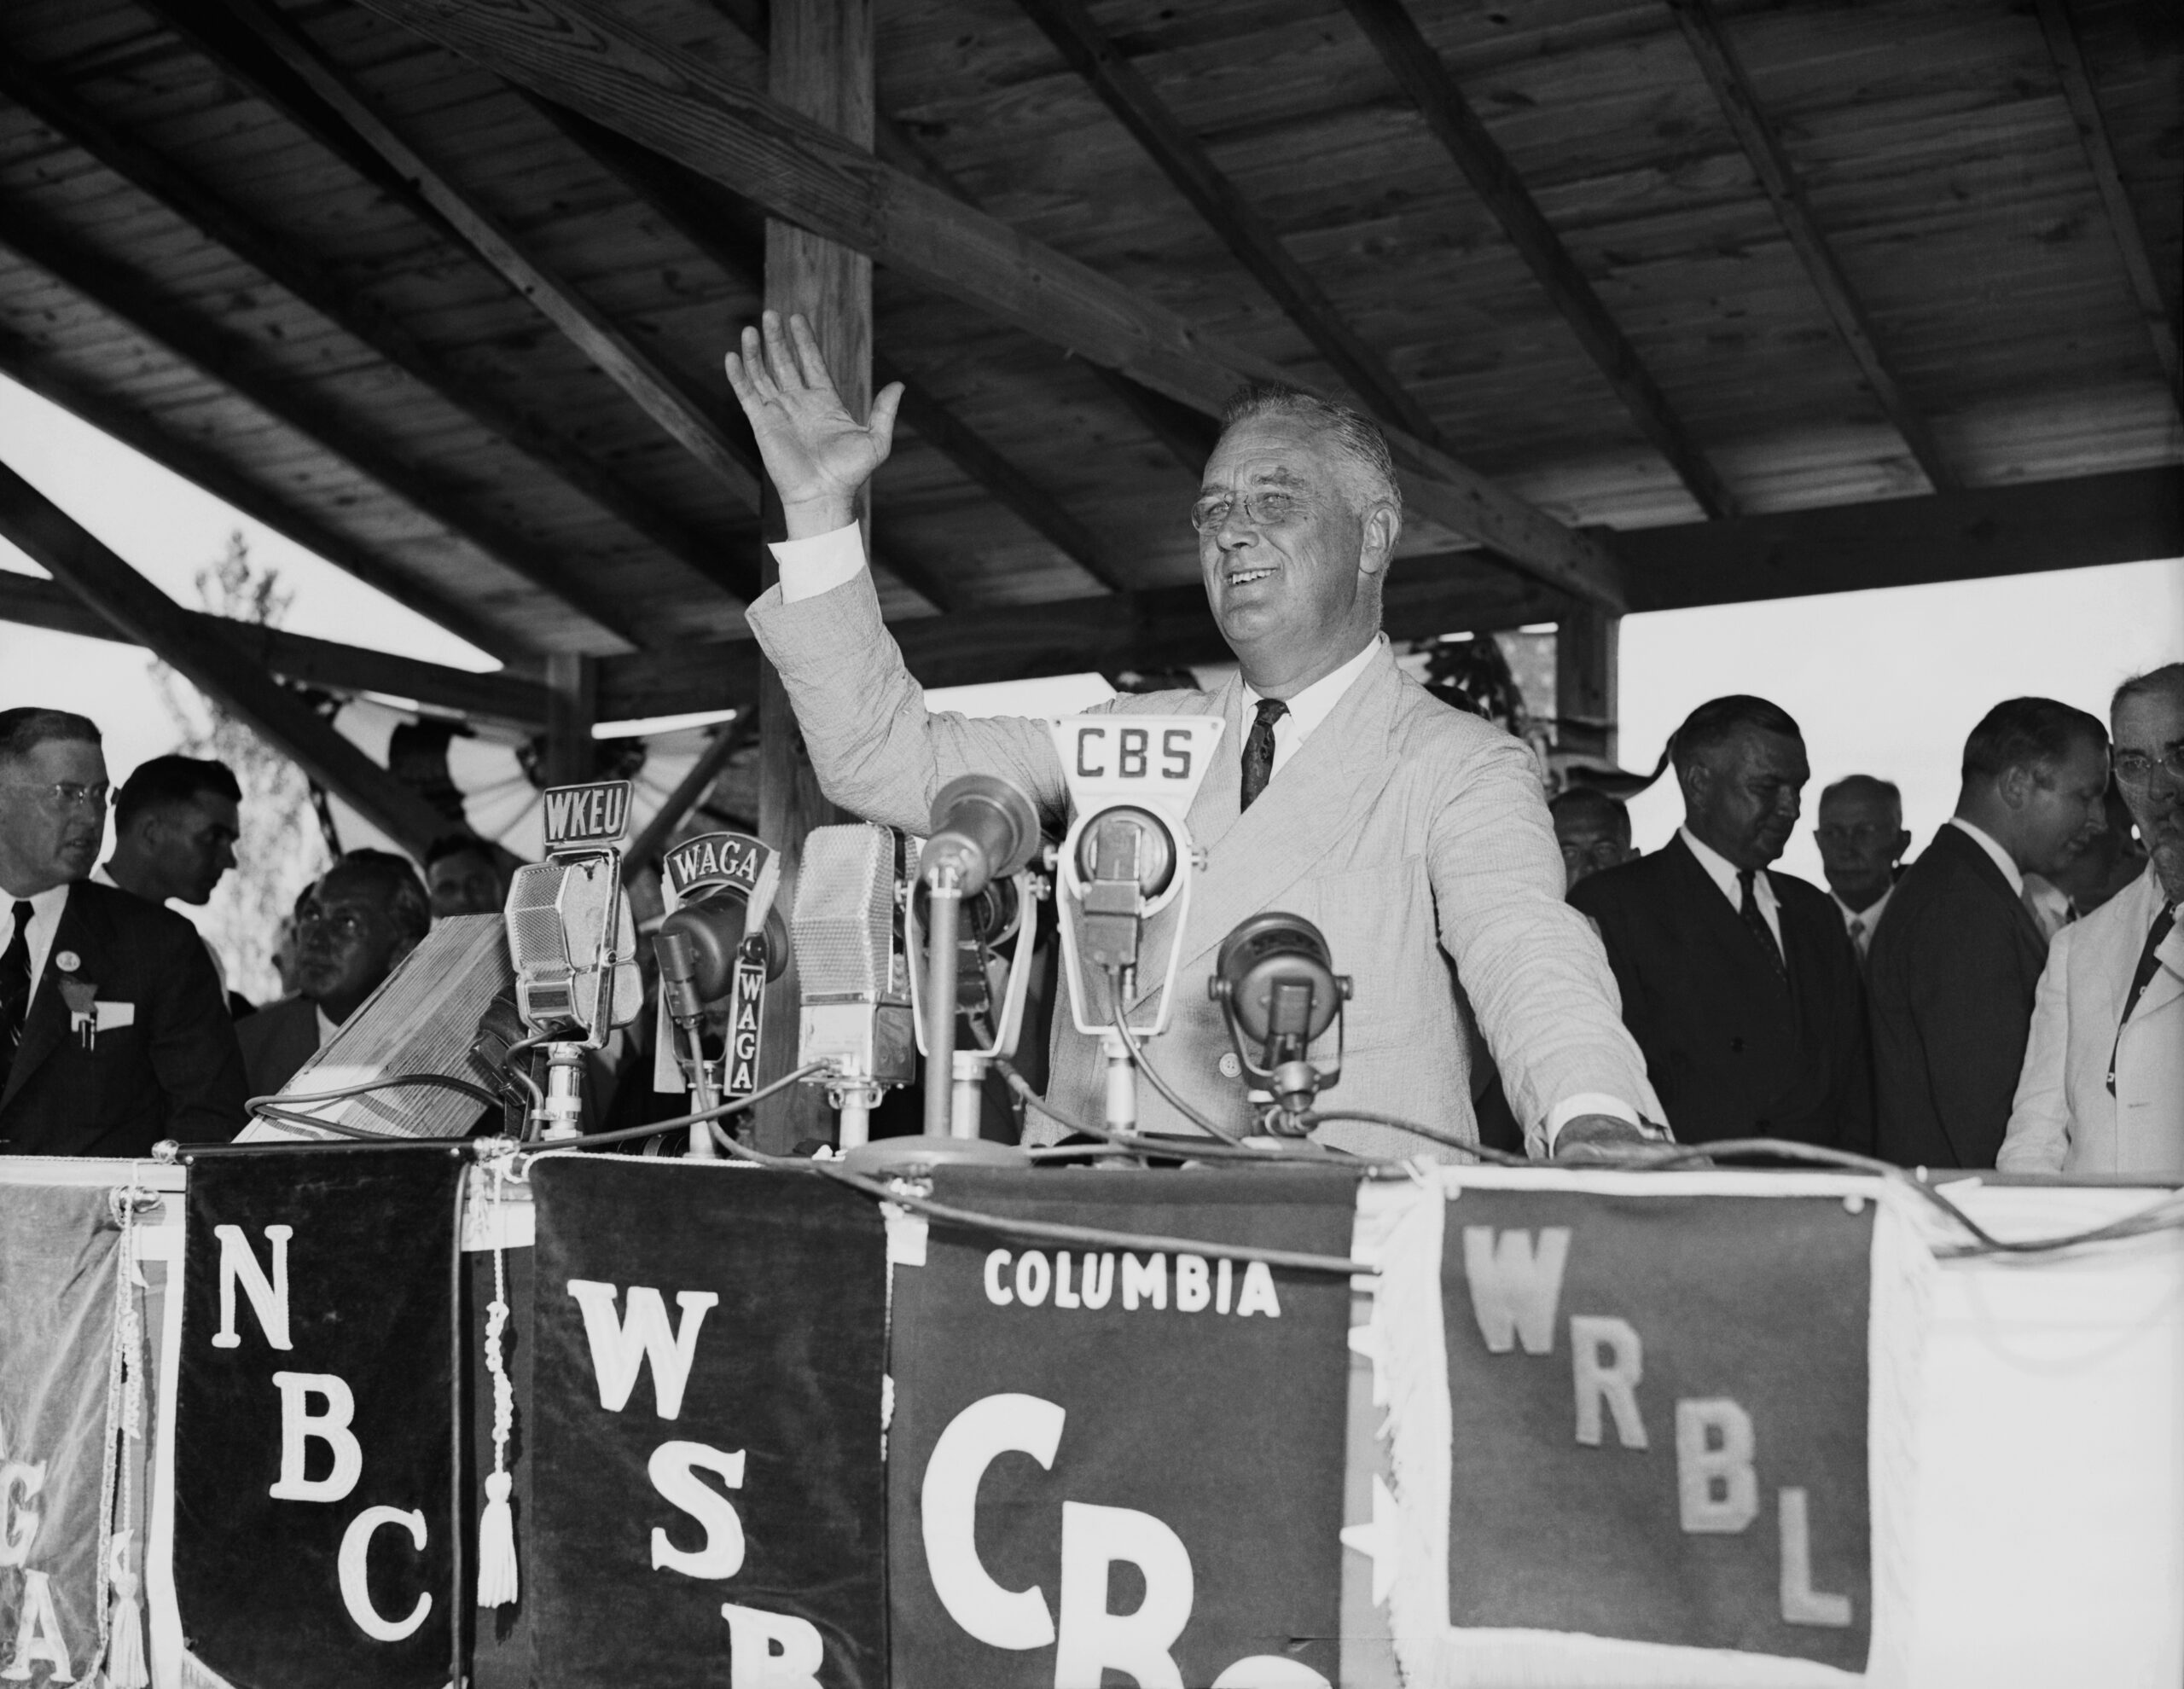 President Roosevelt delivers a speech at the dedication of the U.S. Rural Electrification Project. Credit: Getty Images